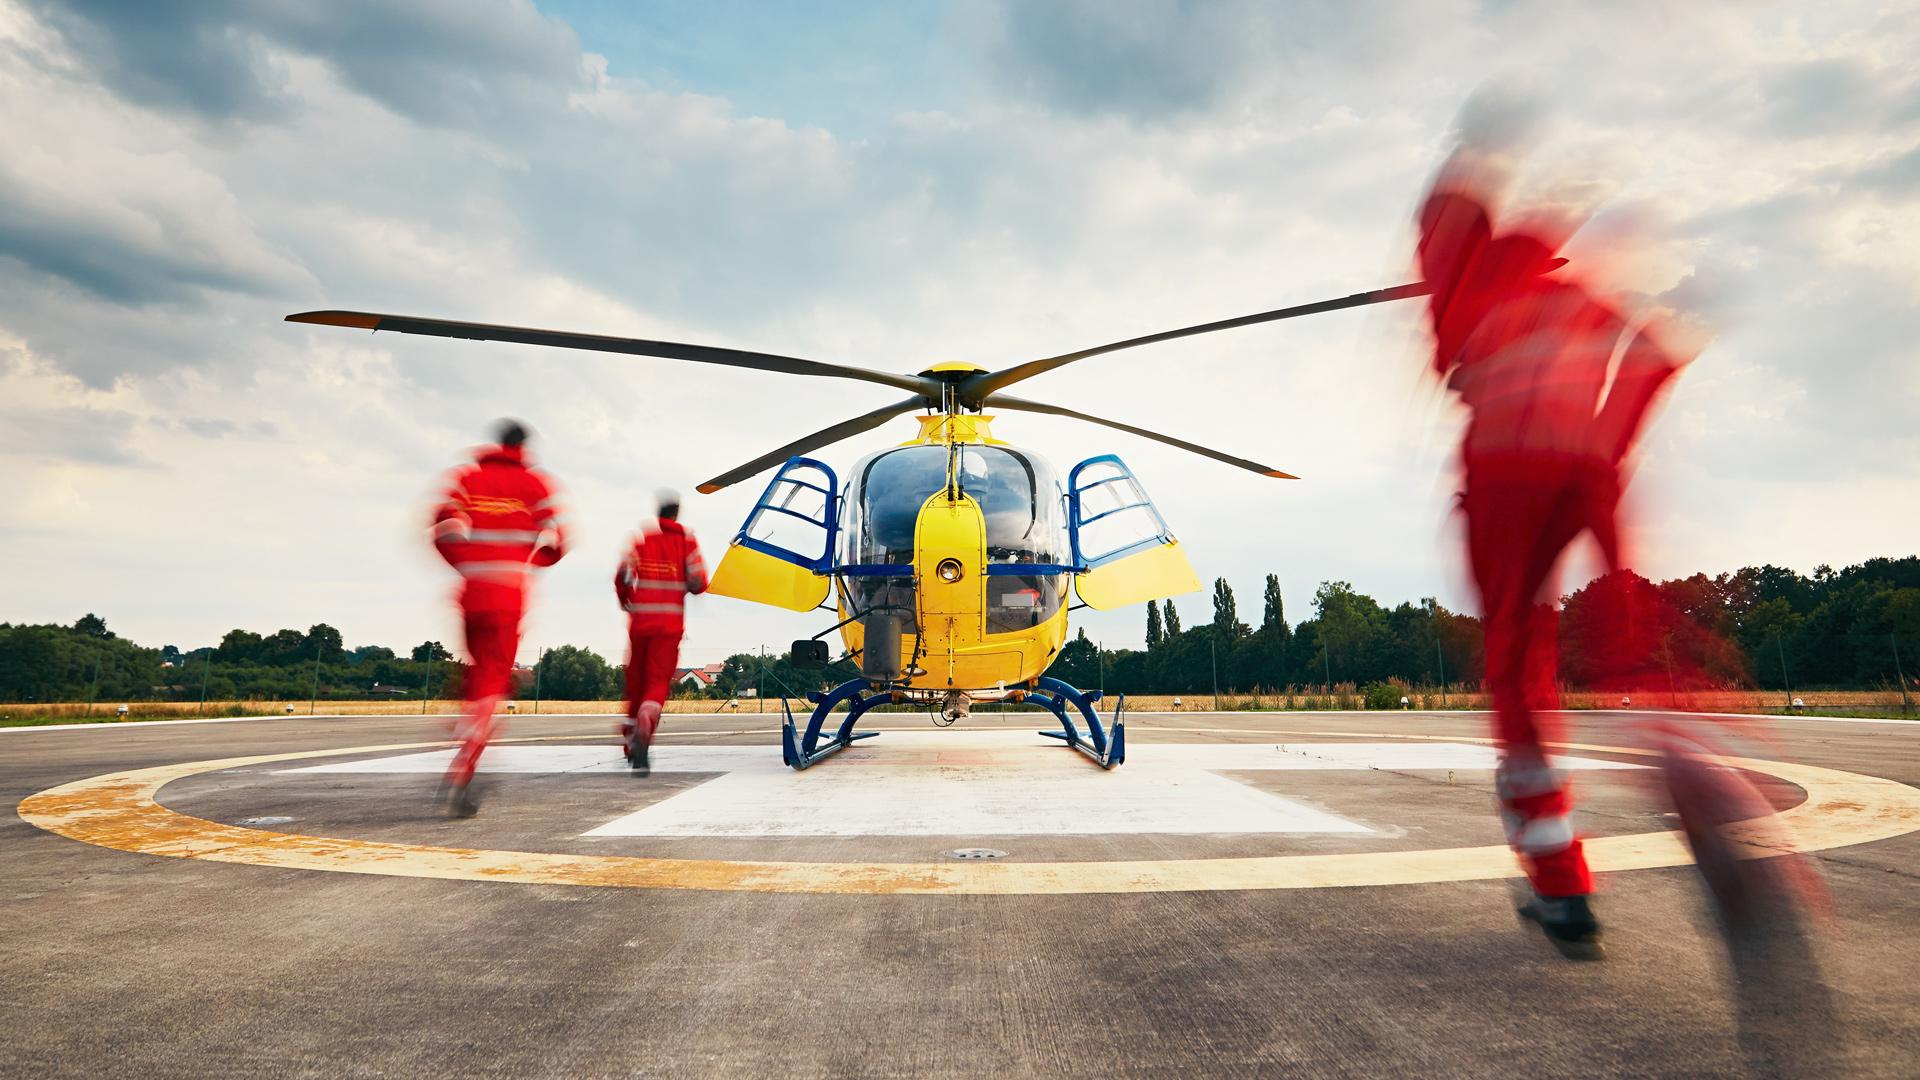 An emergency helicopter about to take off